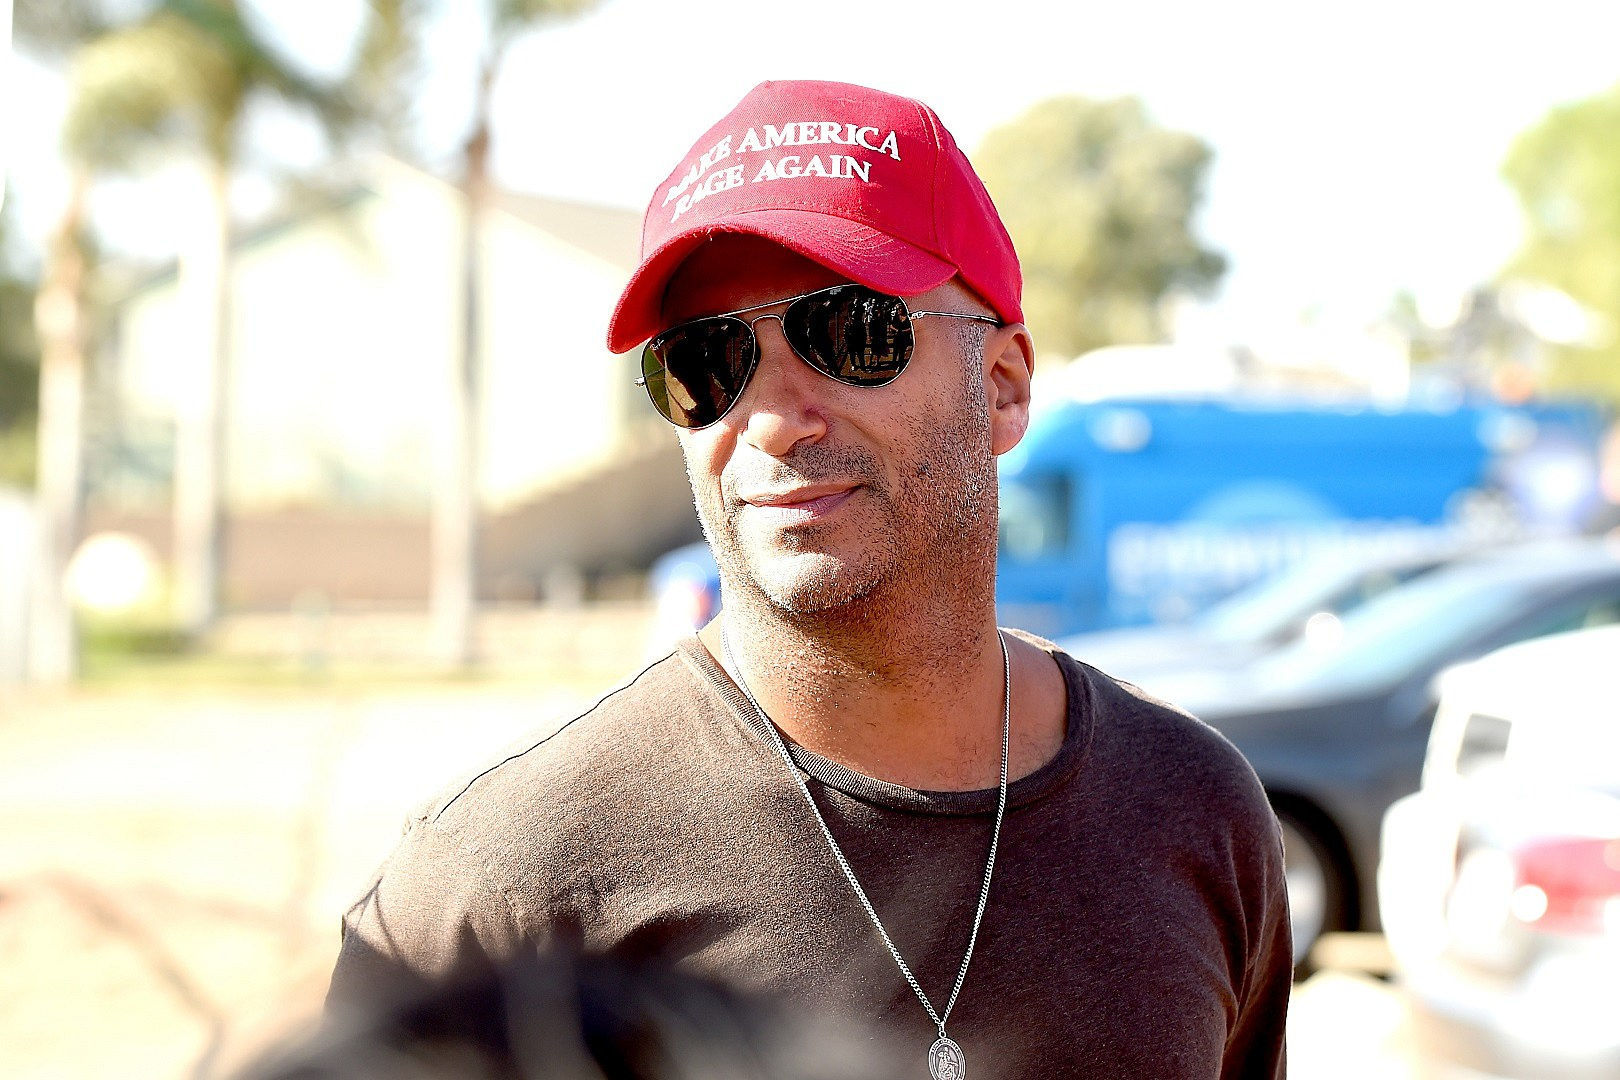 Tom Morello Reports on Hearing 'Epic, Majestic, Symphonic' New Music From Tool